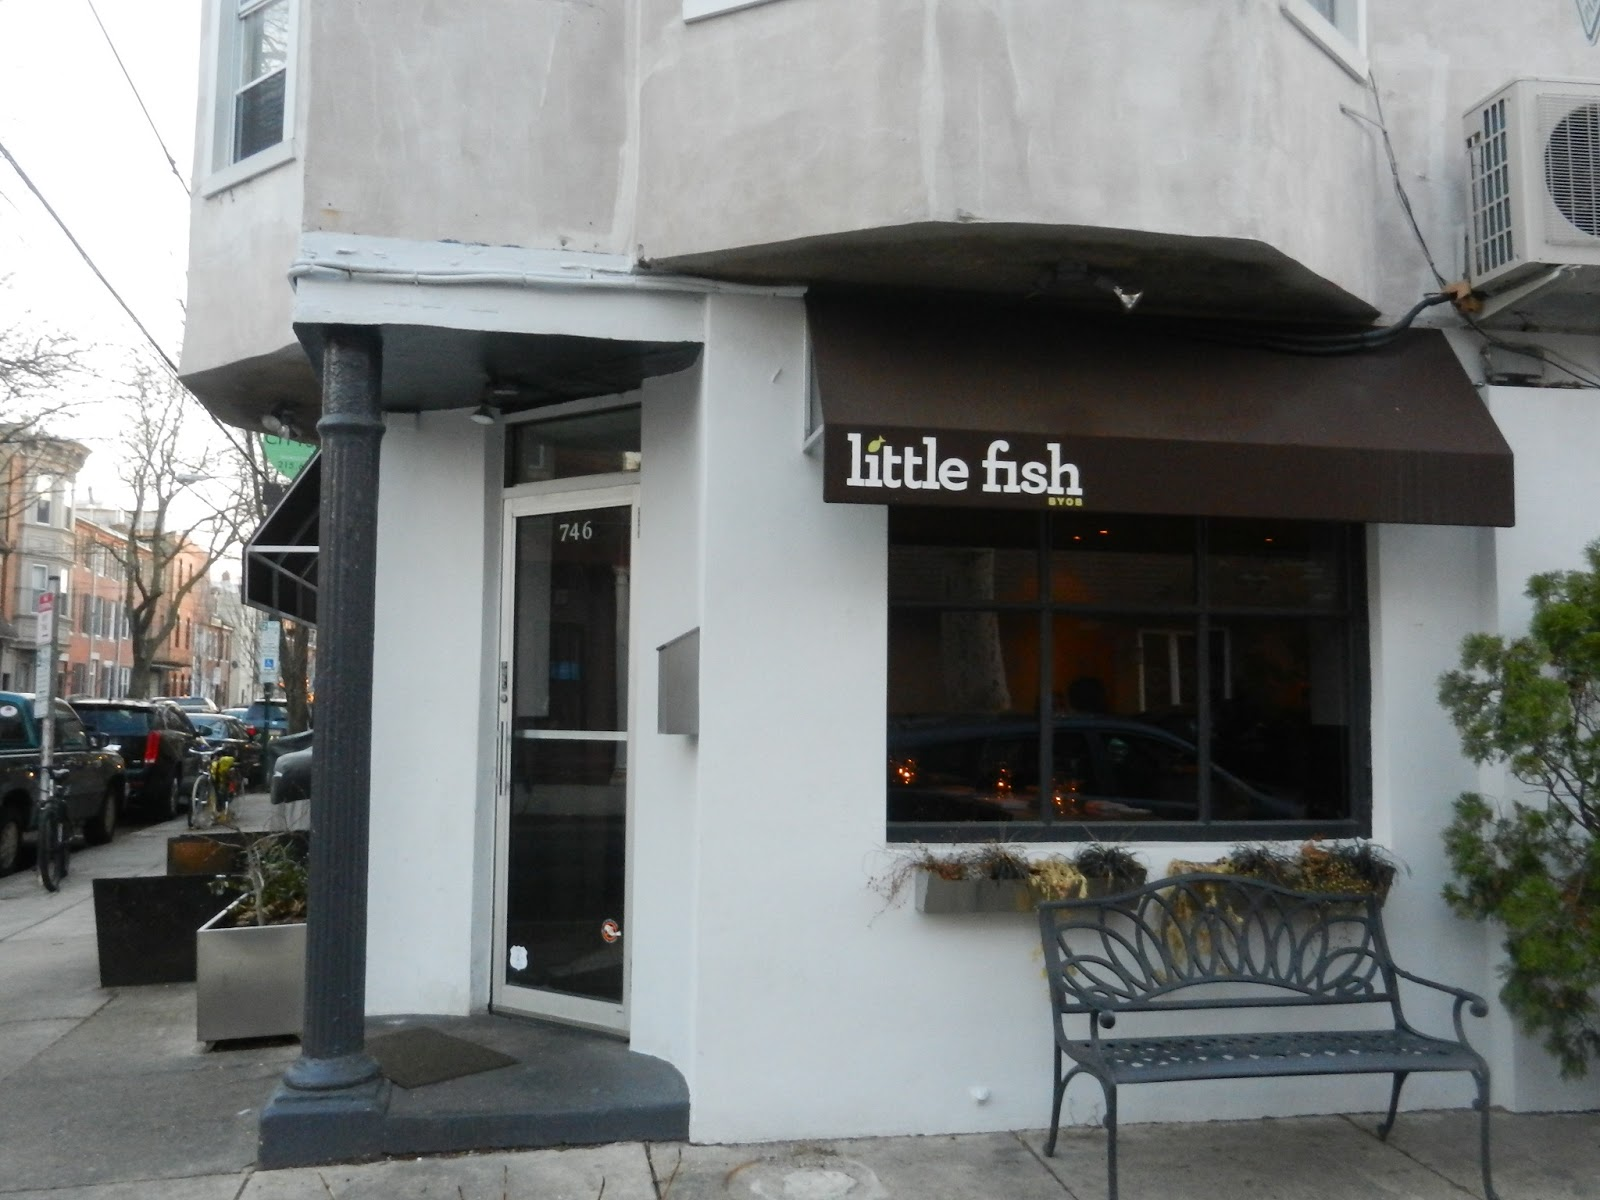 Belly of the pig little fish review for Little fish philadelphia